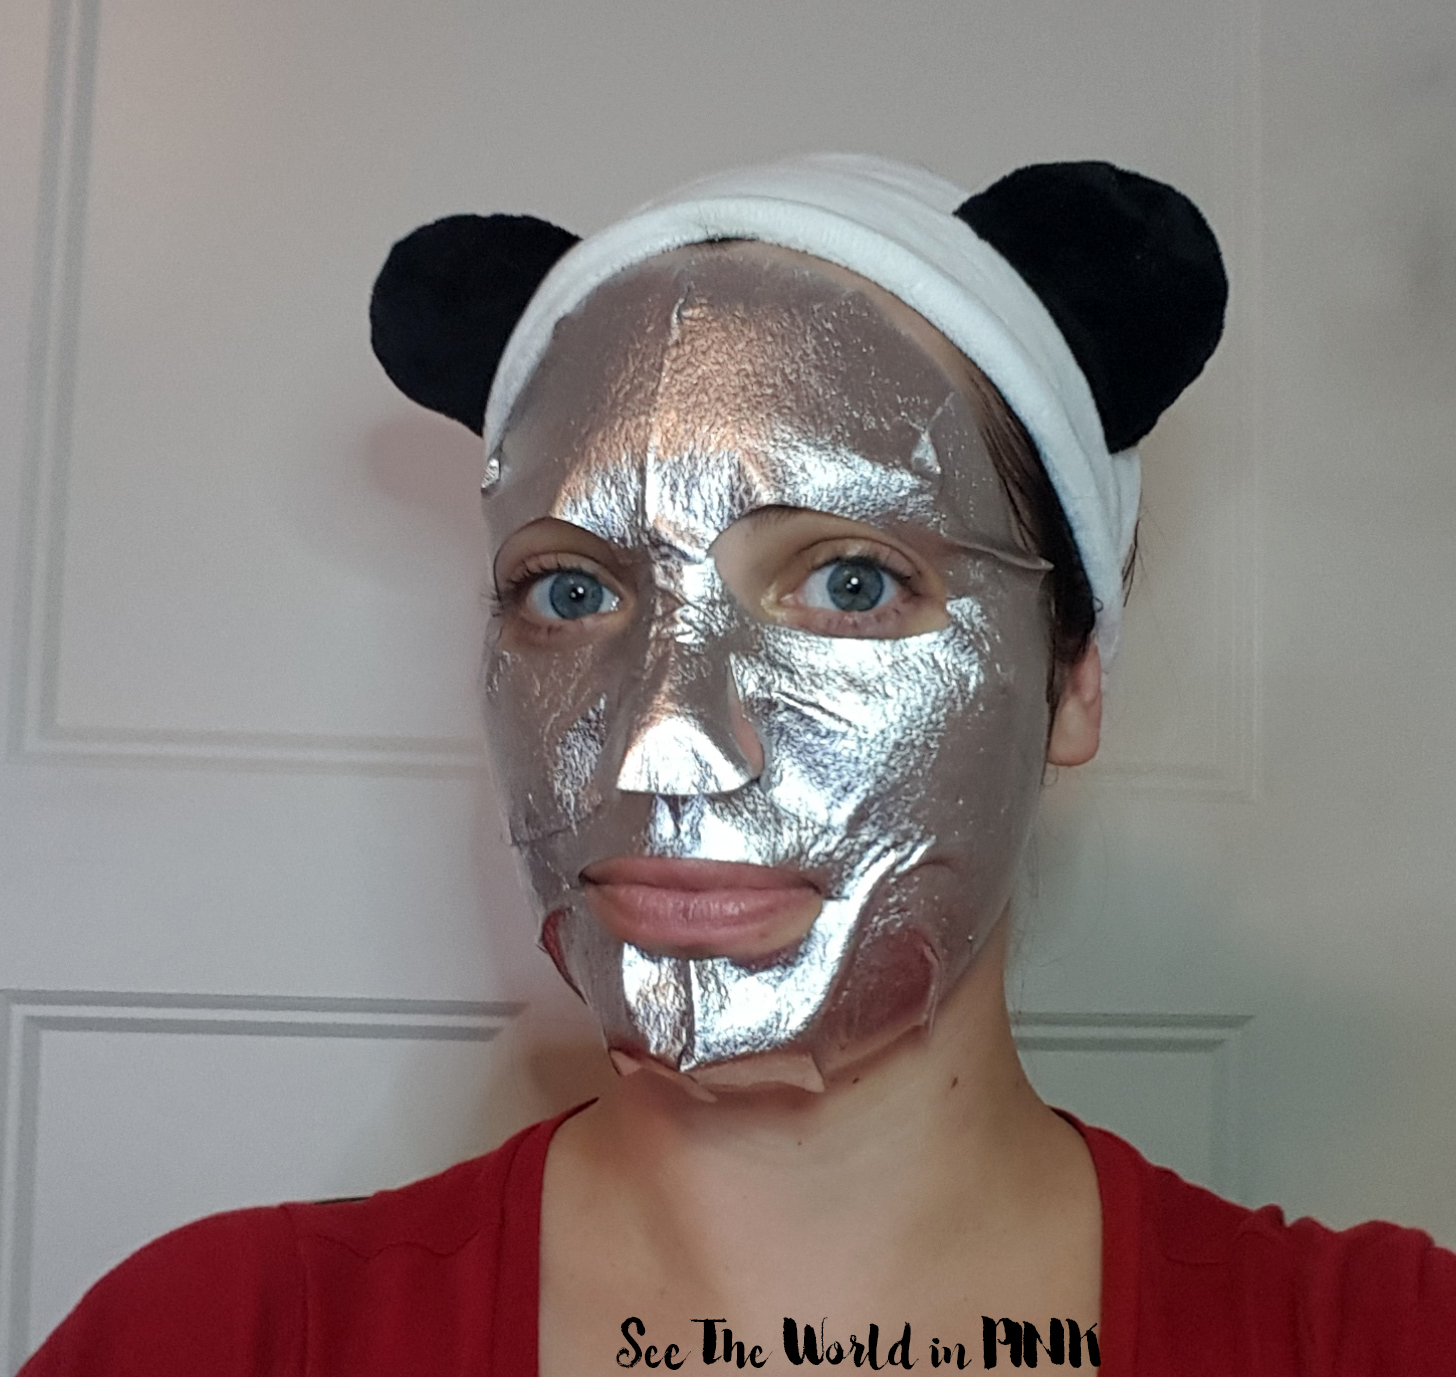 Mask Wednesday - The Face Shop MASK.LAB Anti-Aging Foil Face Mask Try-on and Review!